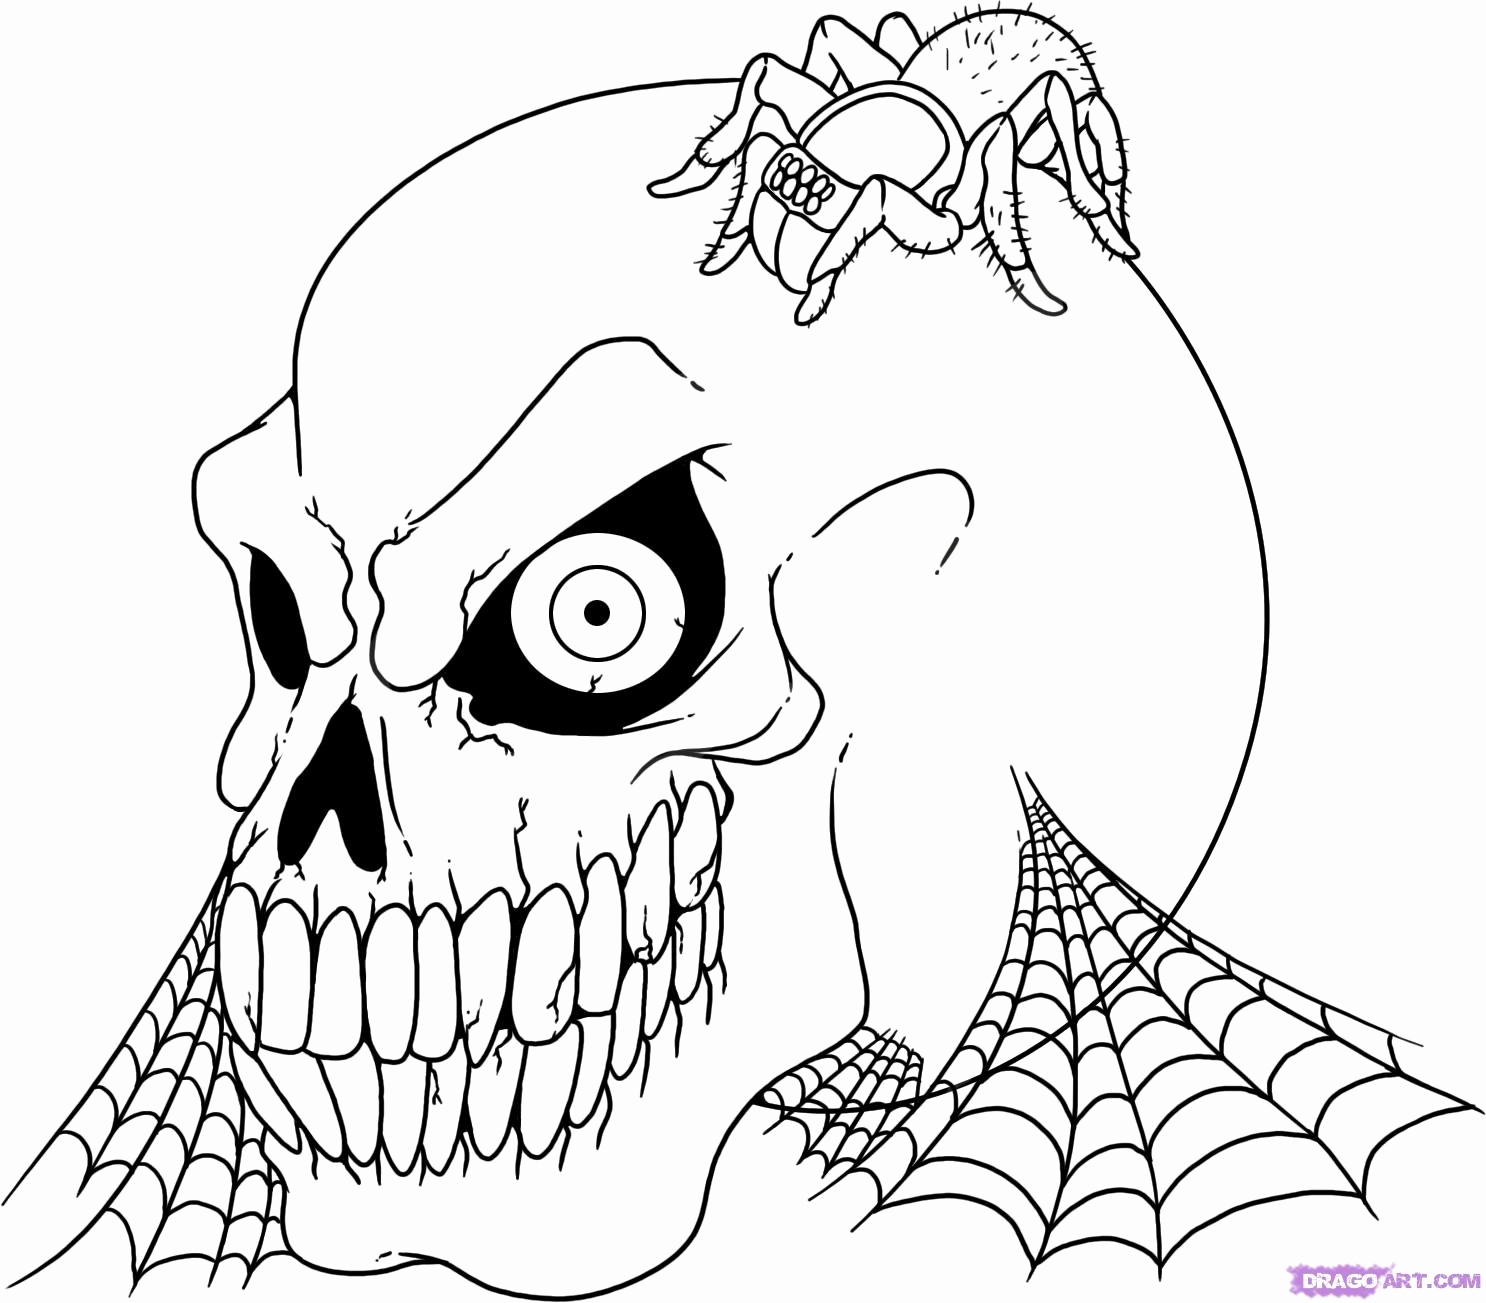 1486x1303 Free Skull Coloring Pages Beautiful Flower Coloring Book Pages